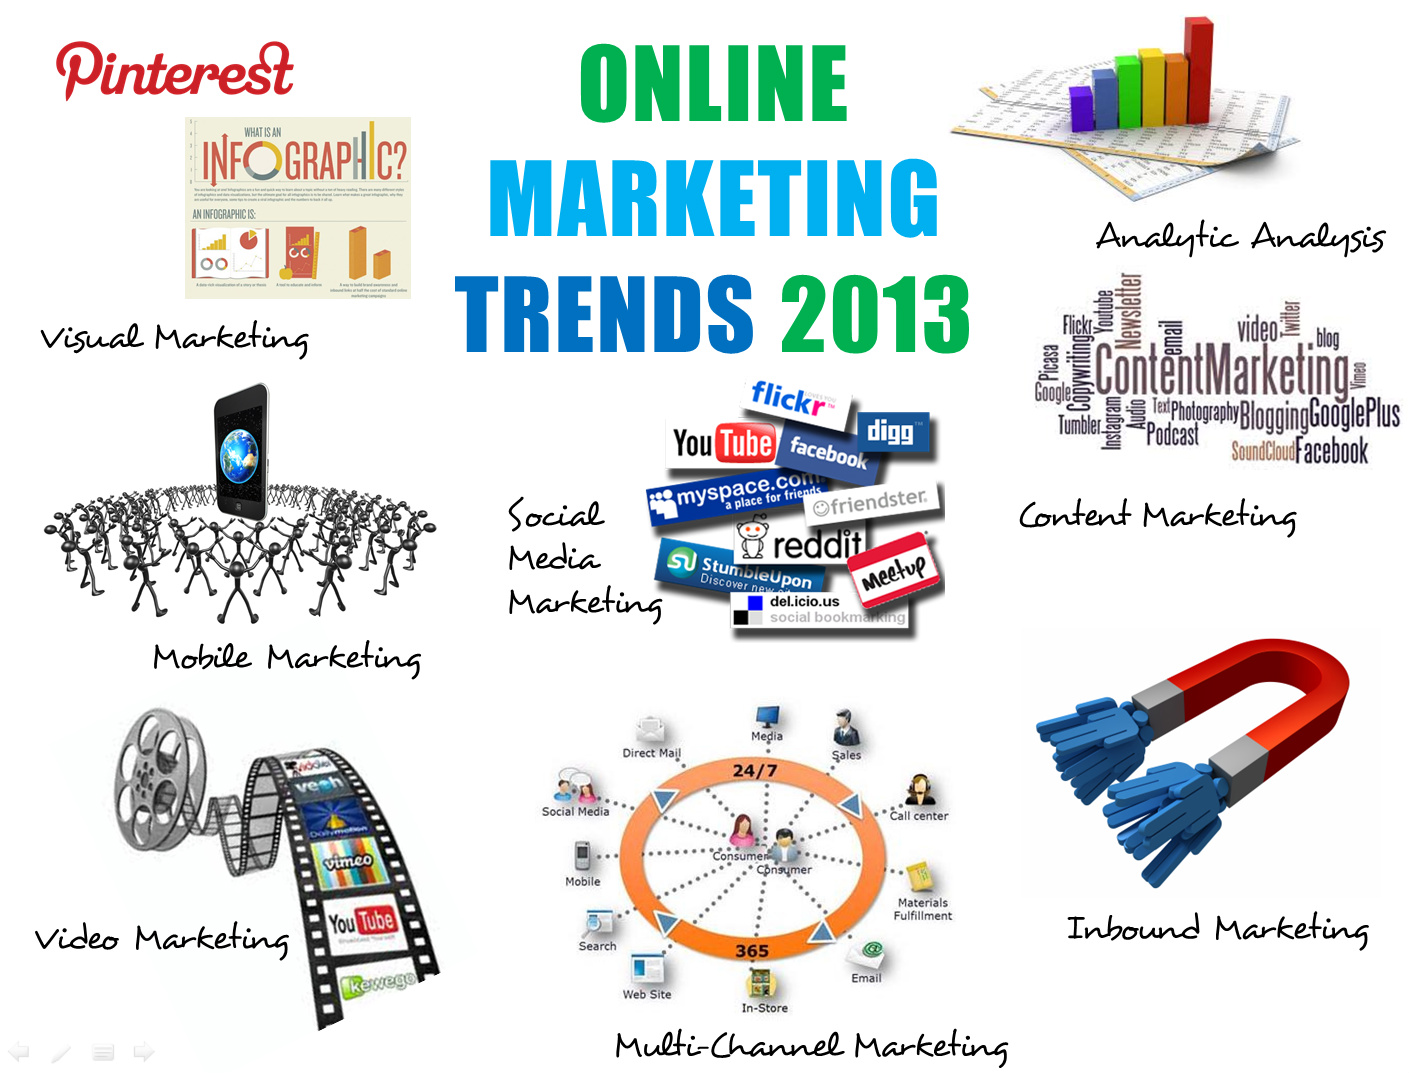 2013 Marketing Trends